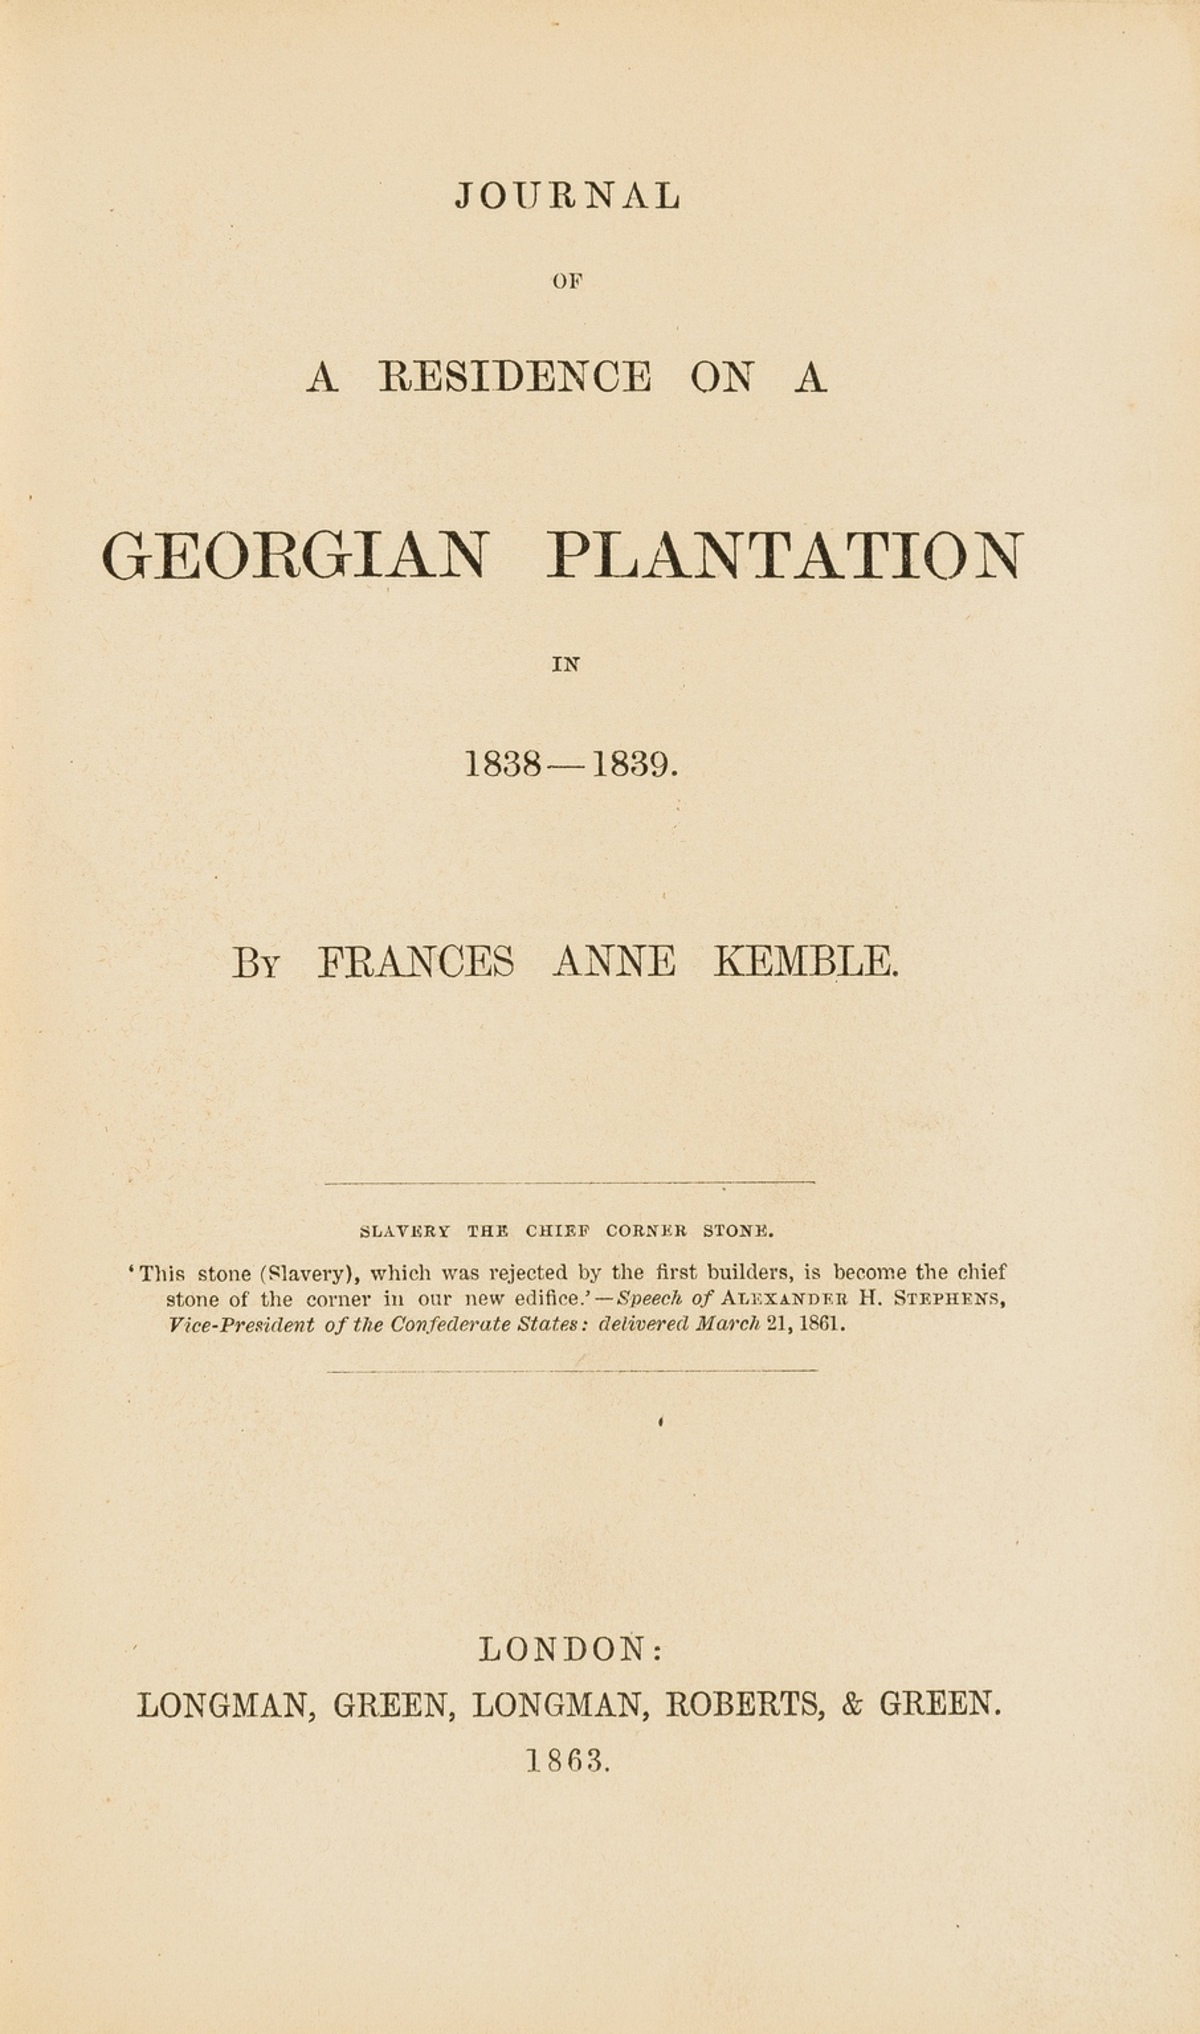 America.- Kemble (Frances Anne) Journal of a Residence on a Georgian Plantation in 1838-1839, …